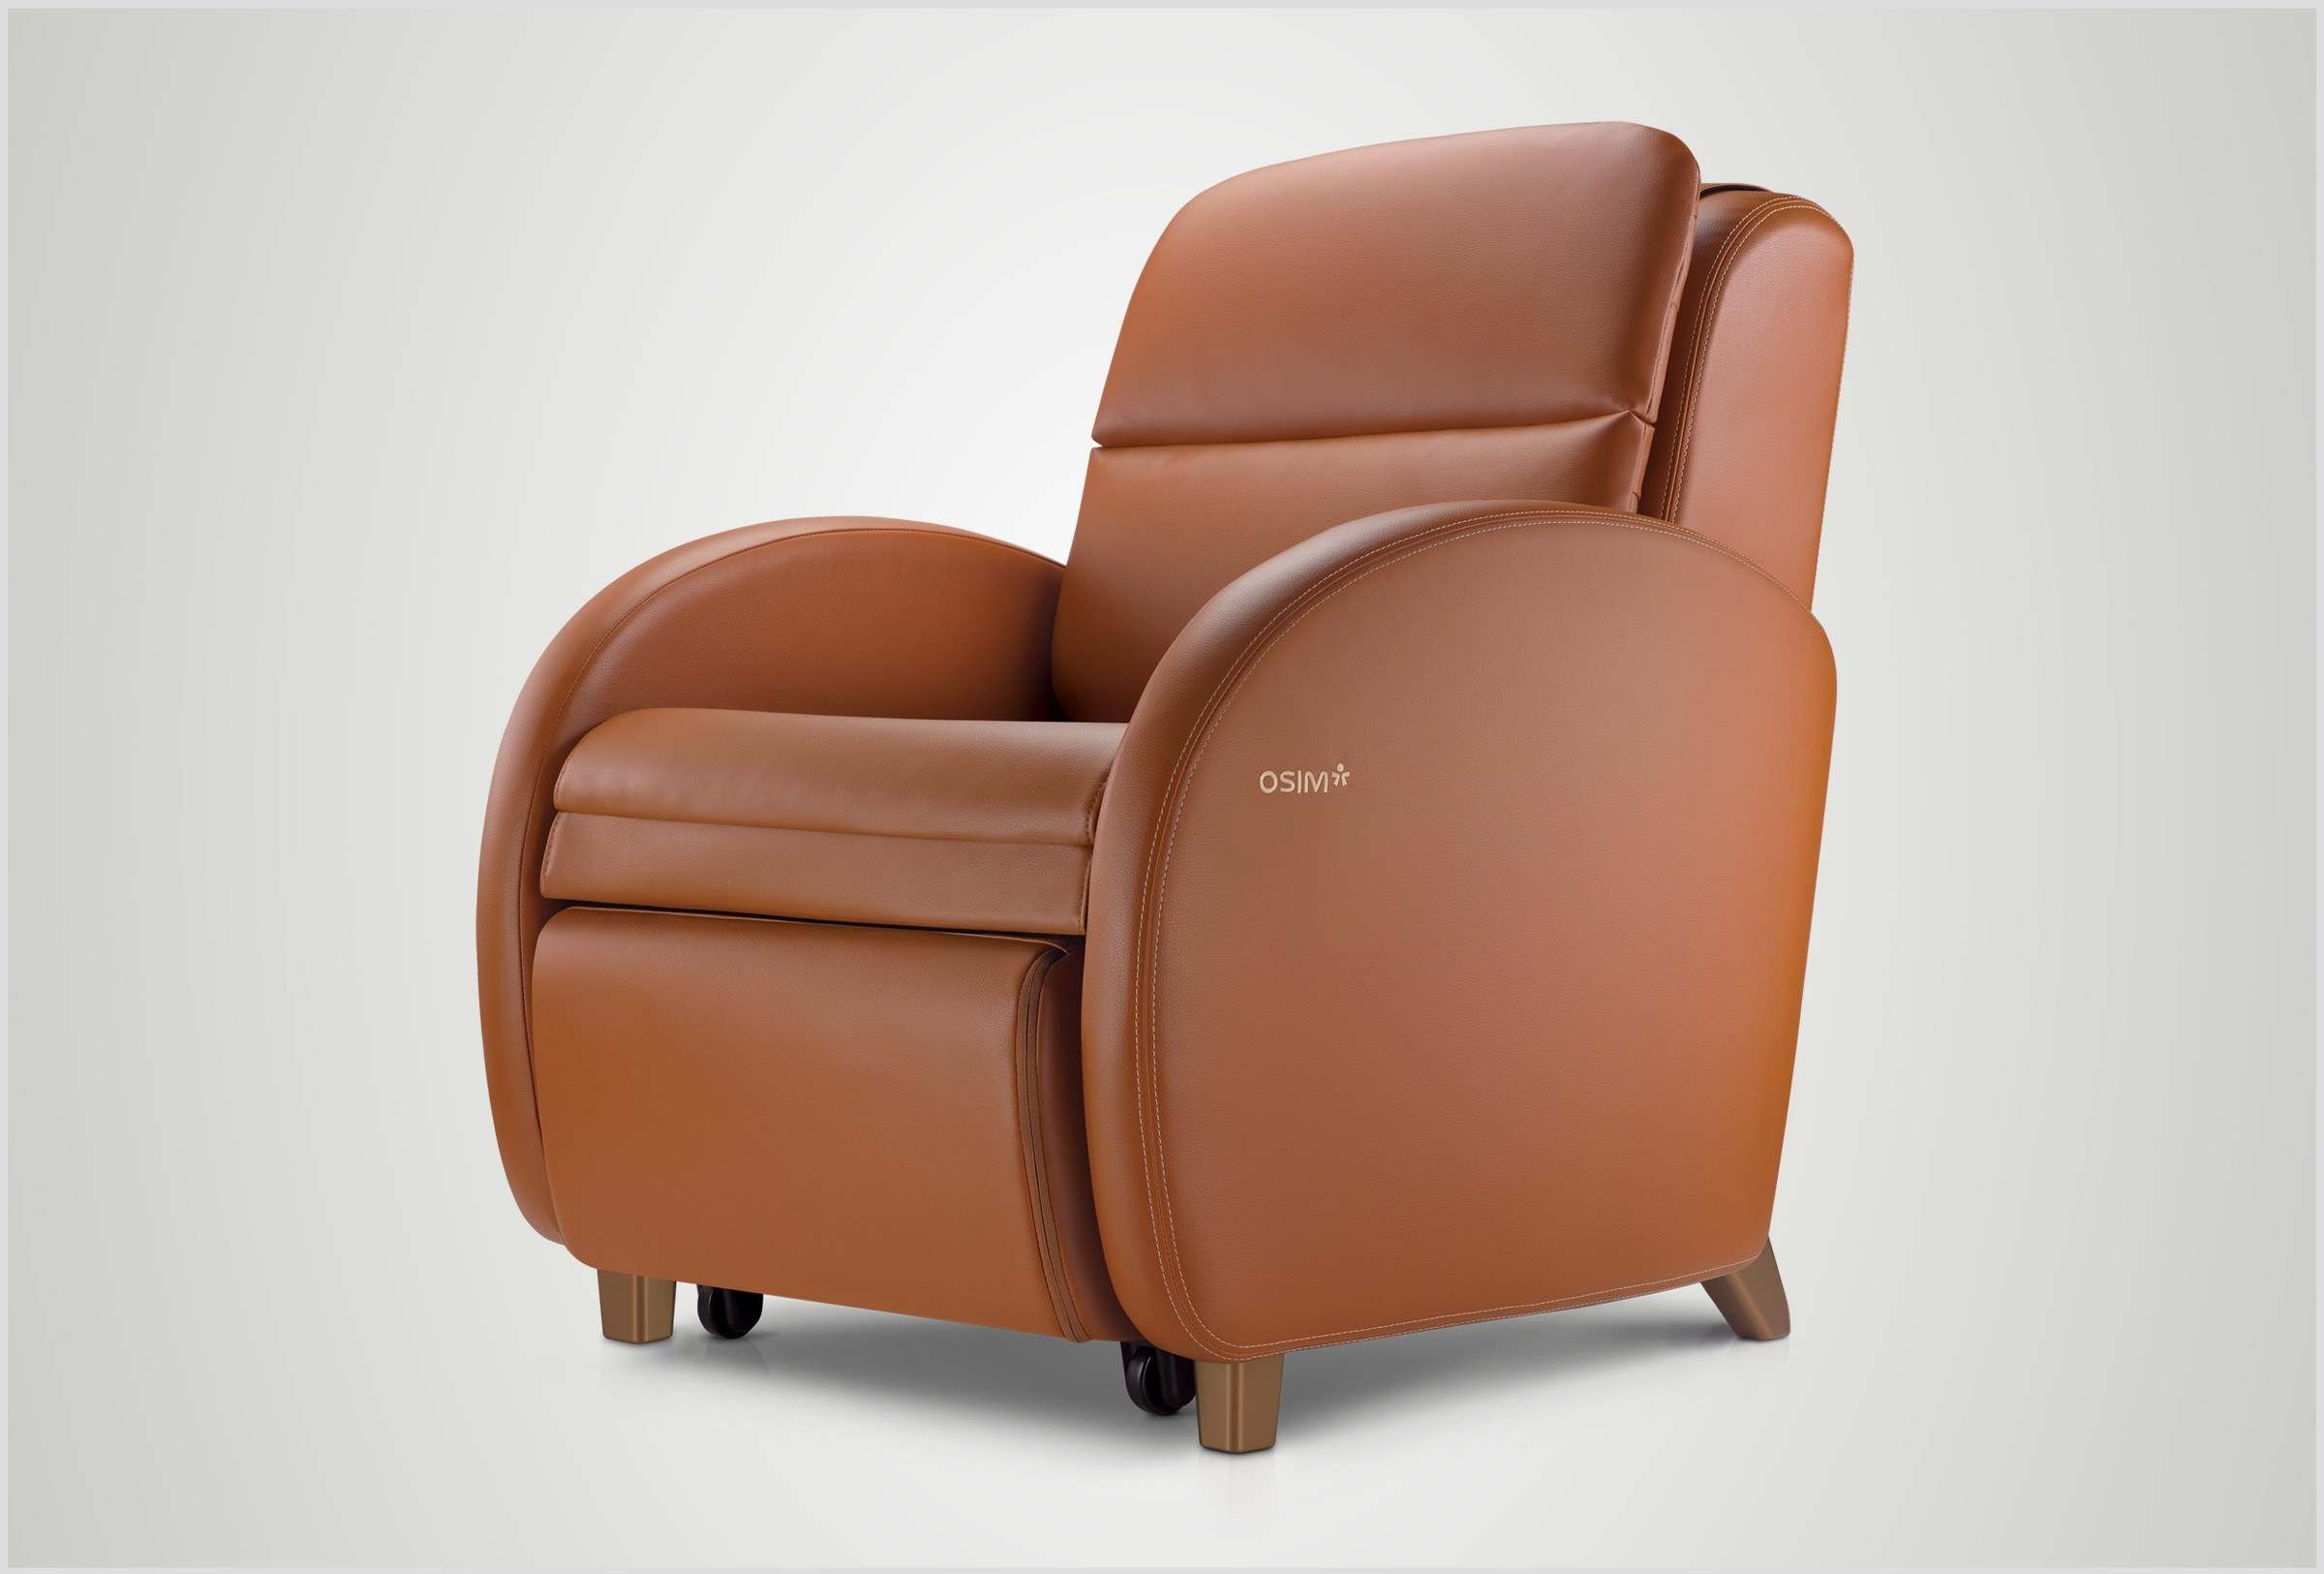 feet for chairs chair covers of cincinnati foot massage sofa ideas